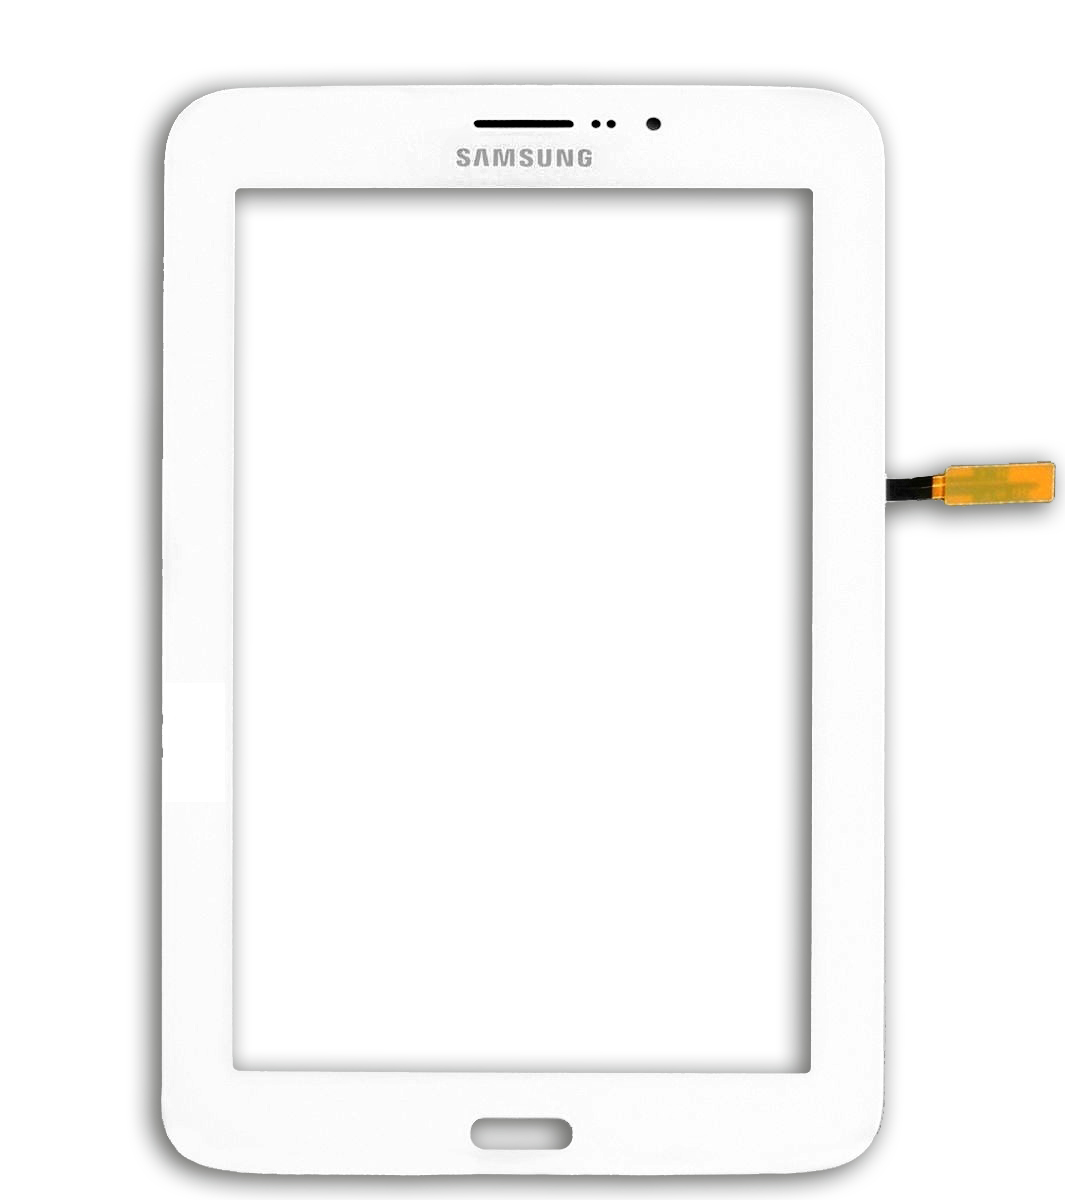 Touch Tablet Samsung Tab 3 Lite 3g Sm-T111 Branco